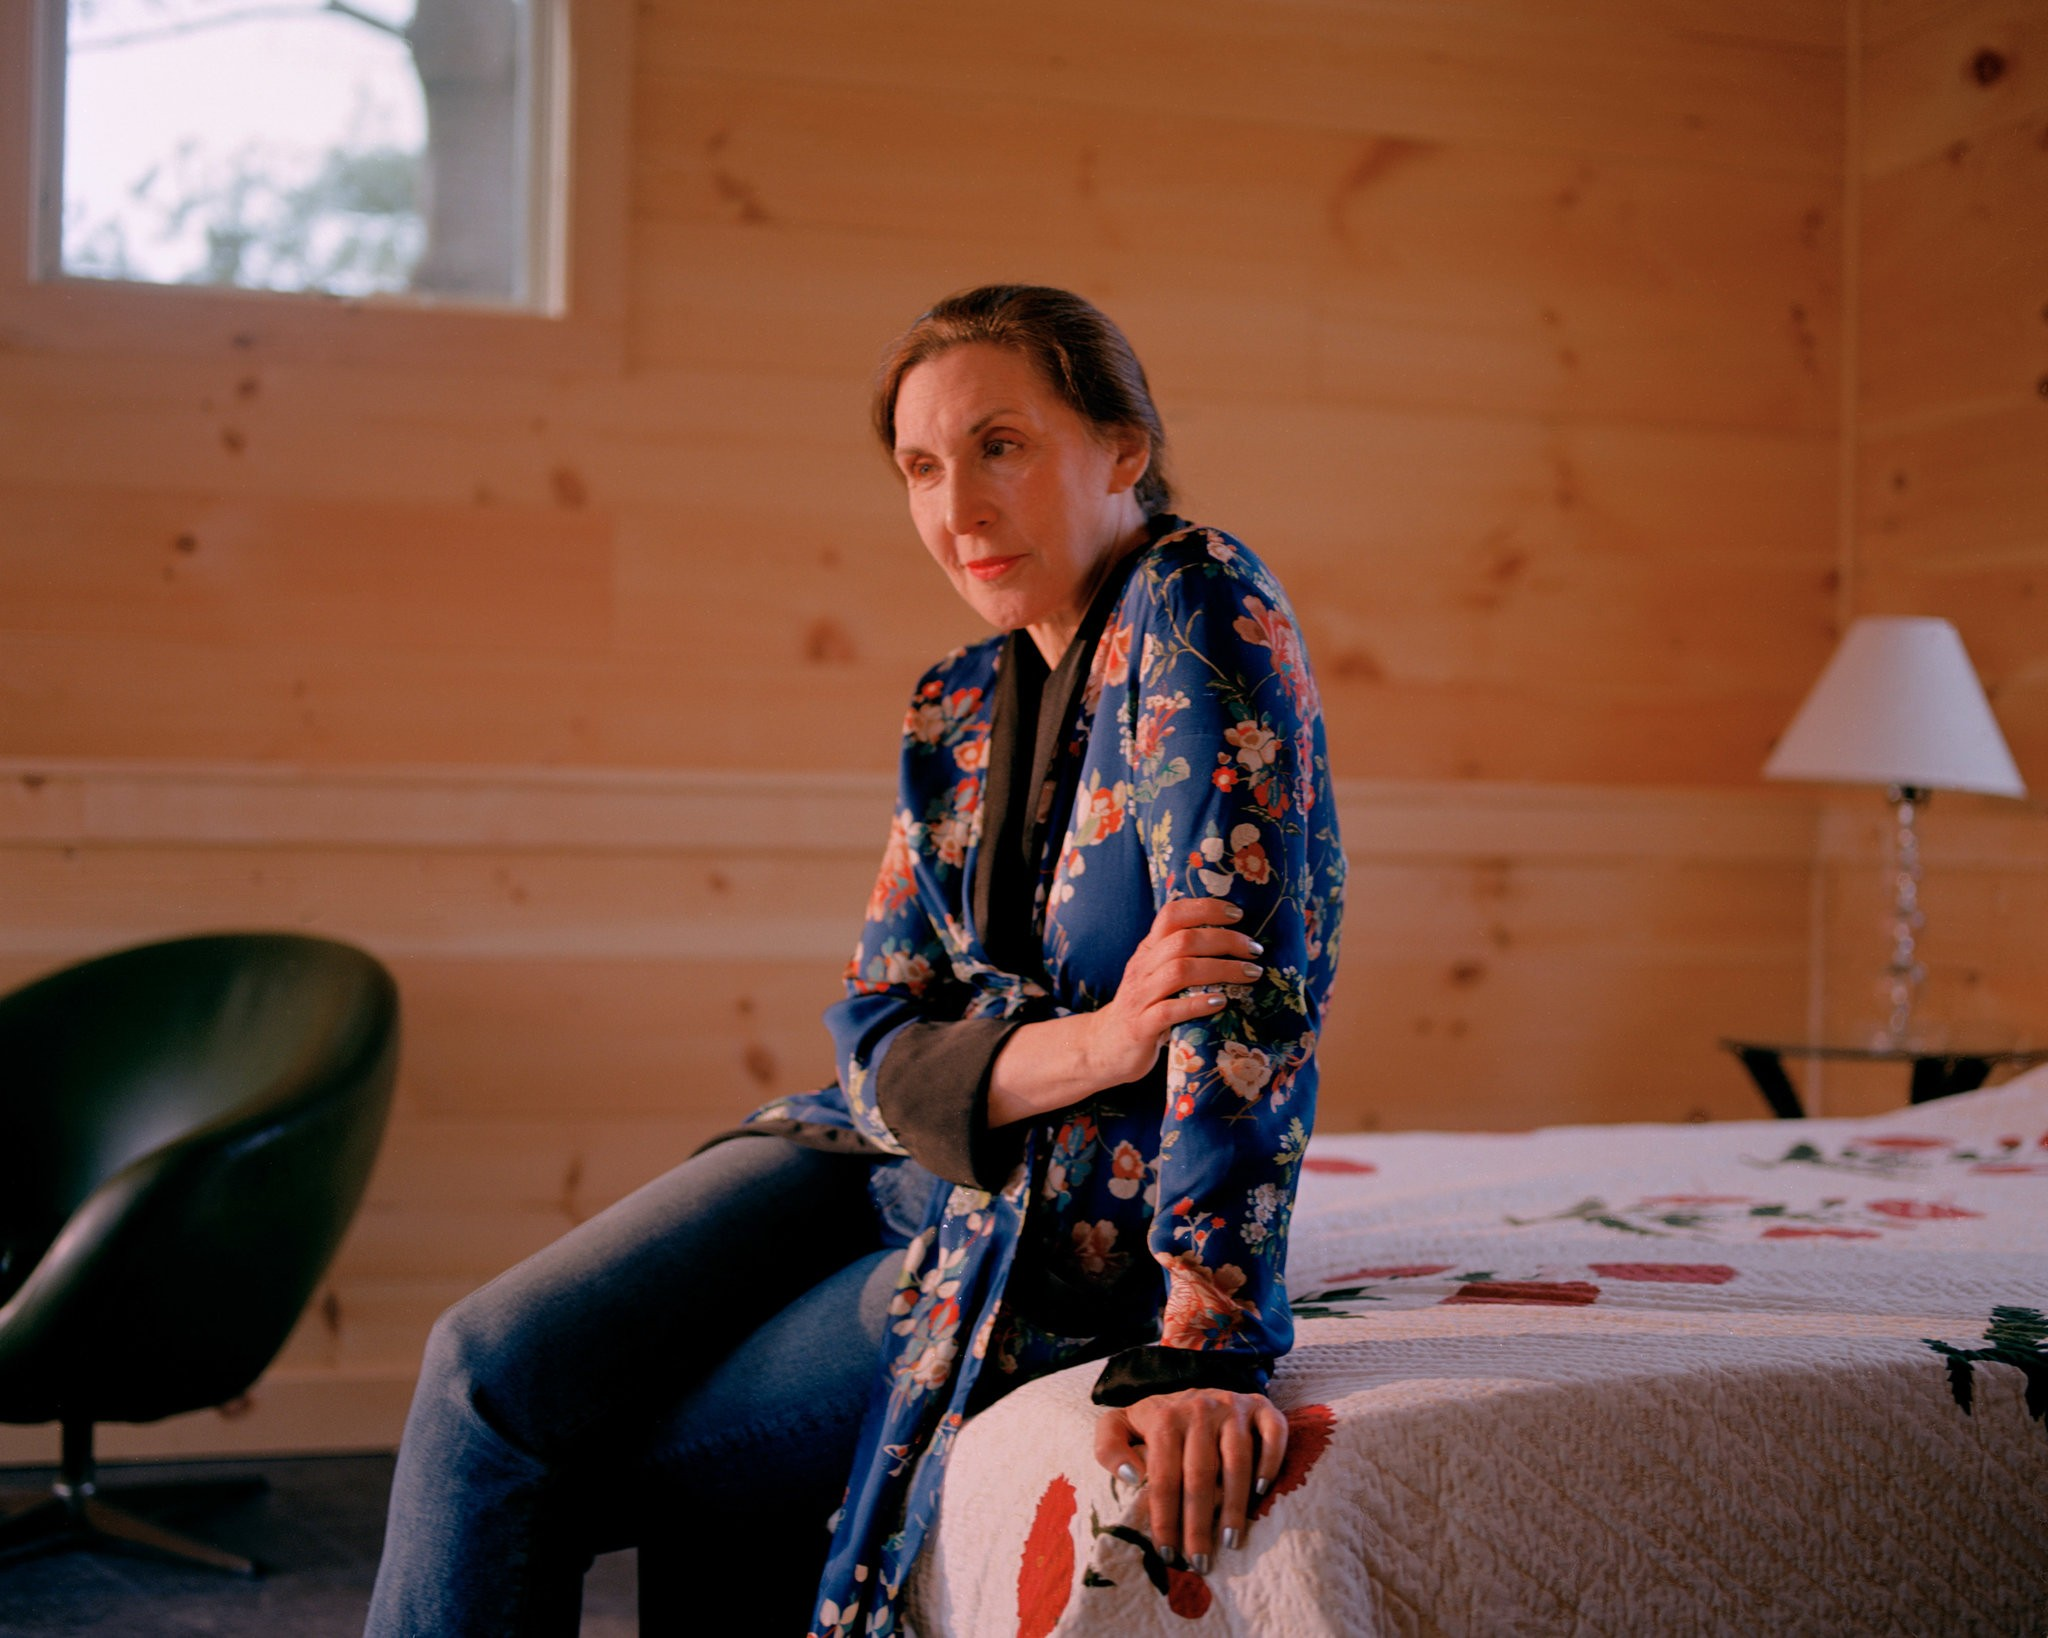 Influenced by Her Children, Laurie Simmons Exits Her Comfort Zone